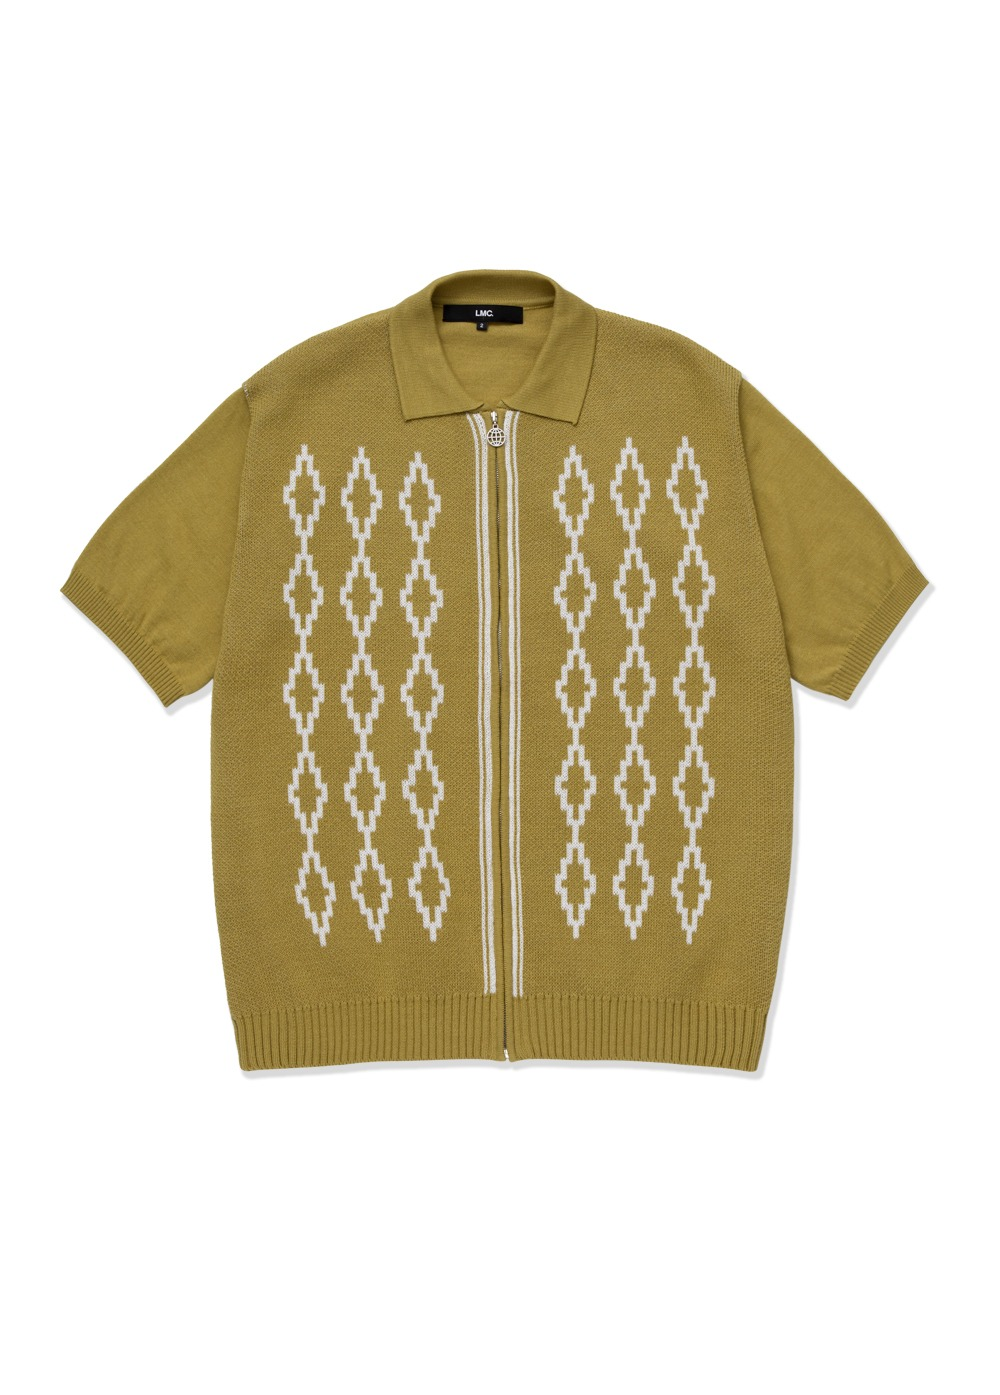 LMC DIAMOND ZIP UP KNITTED POLO SHIRT olive